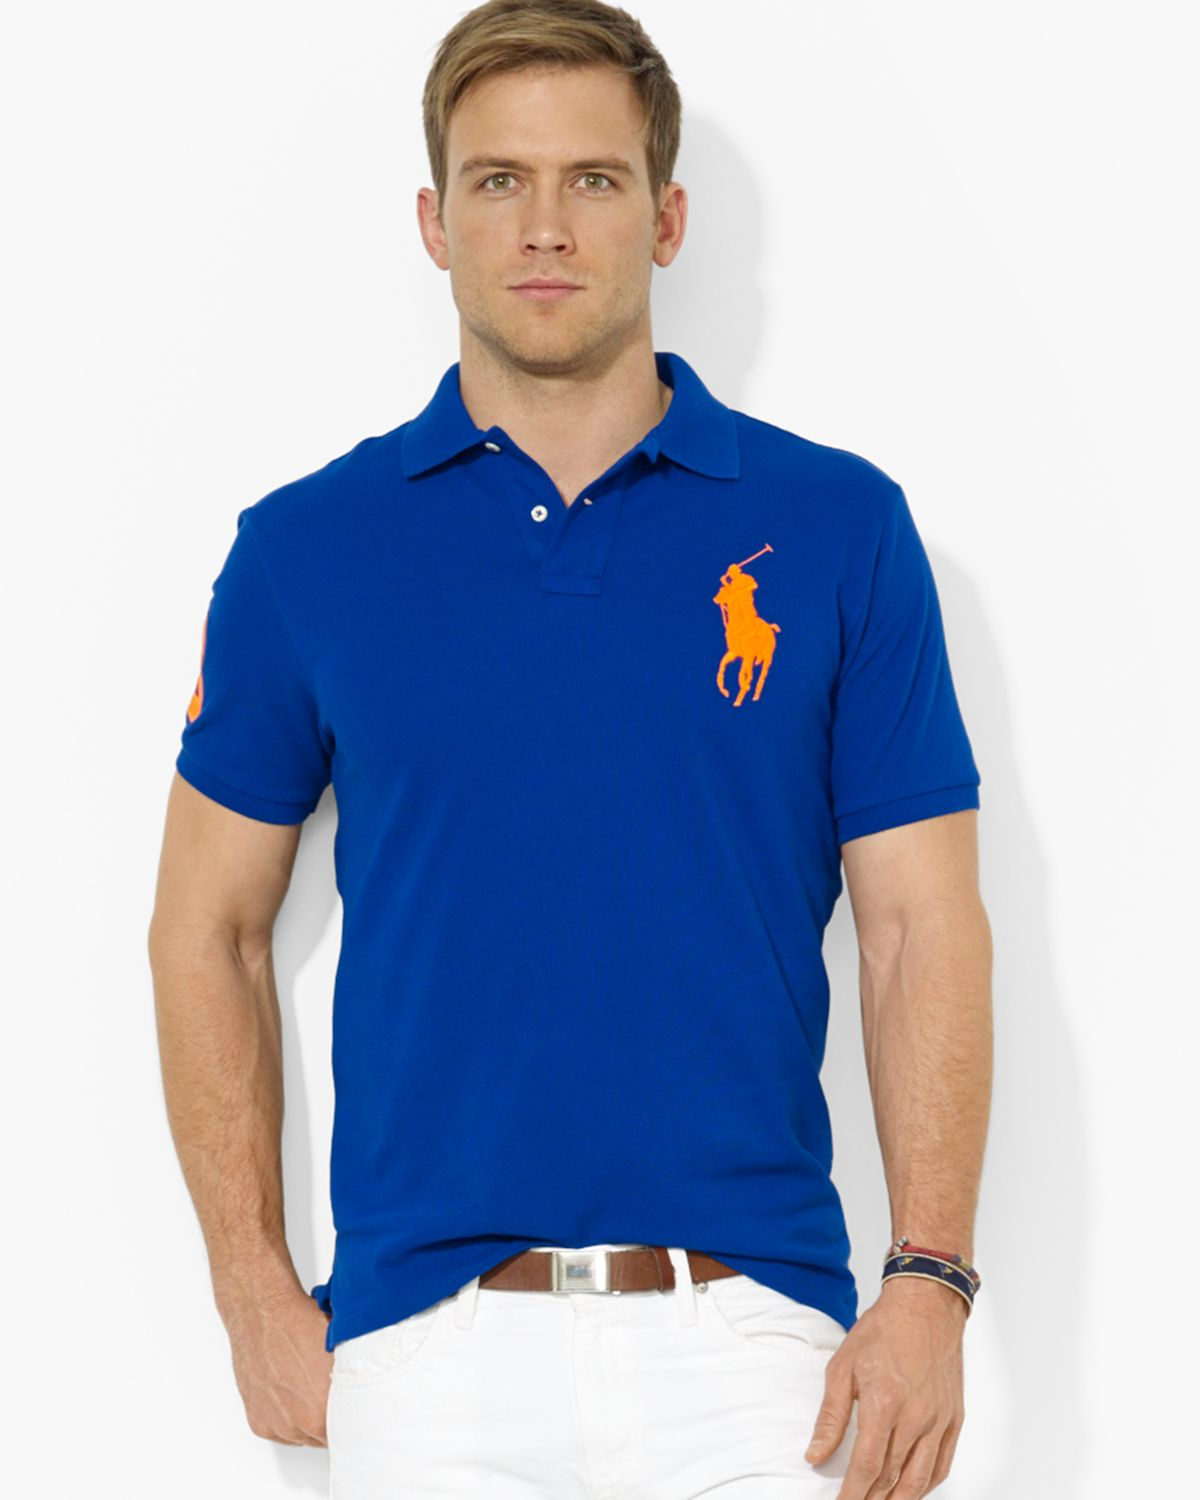 Marein polo ralph lauren custom fit men shirt Man in polo shirt